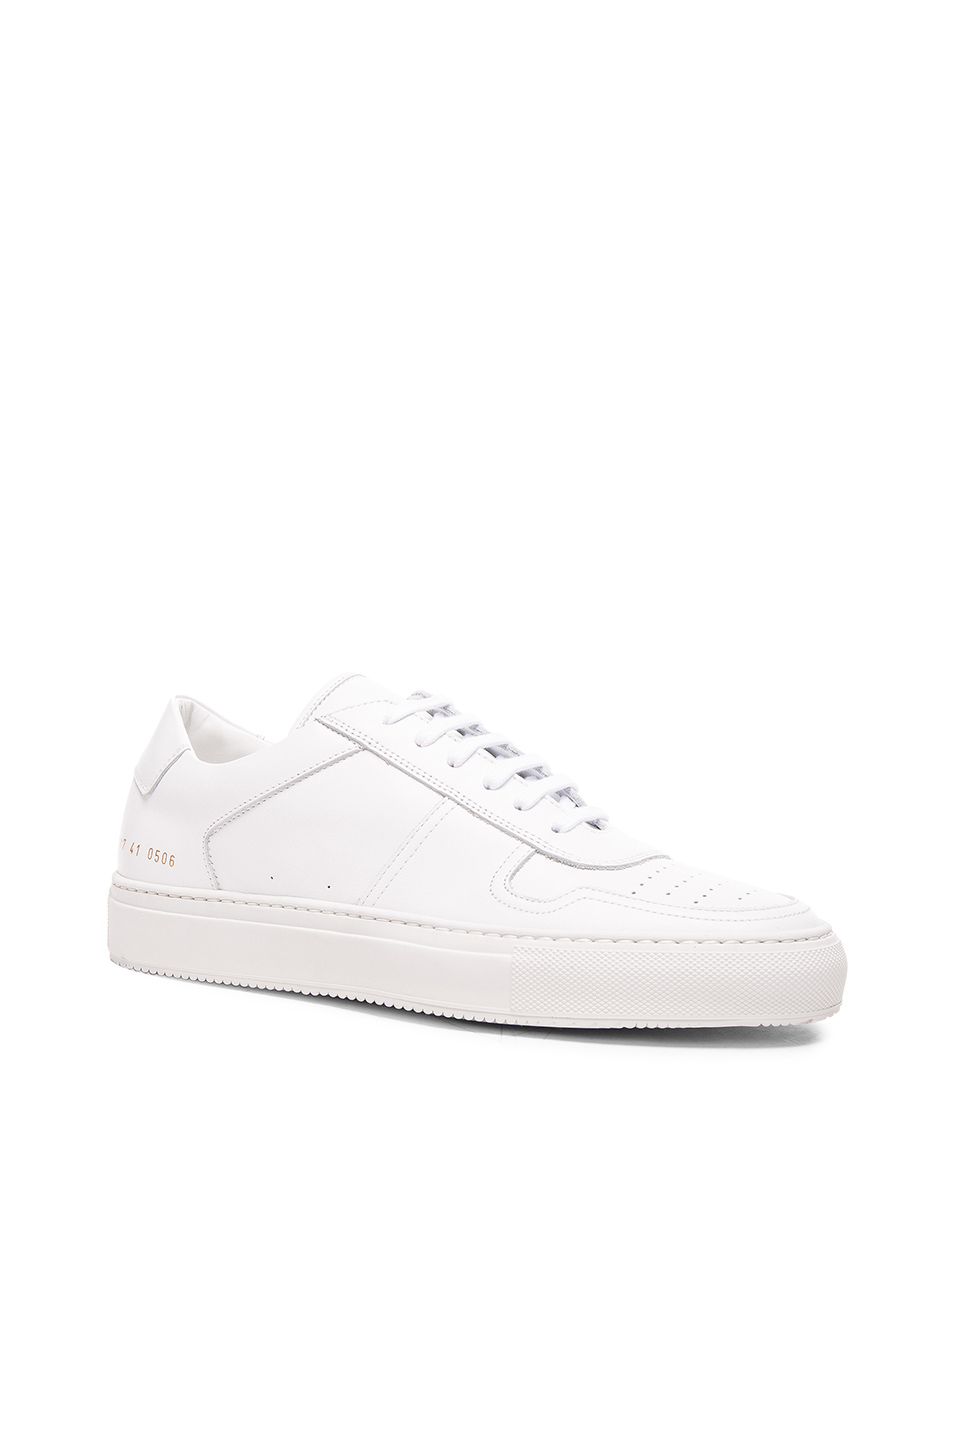 common projects leather bball low sneakers in white lyst. Black Bedroom Furniture Sets. Home Design Ideas